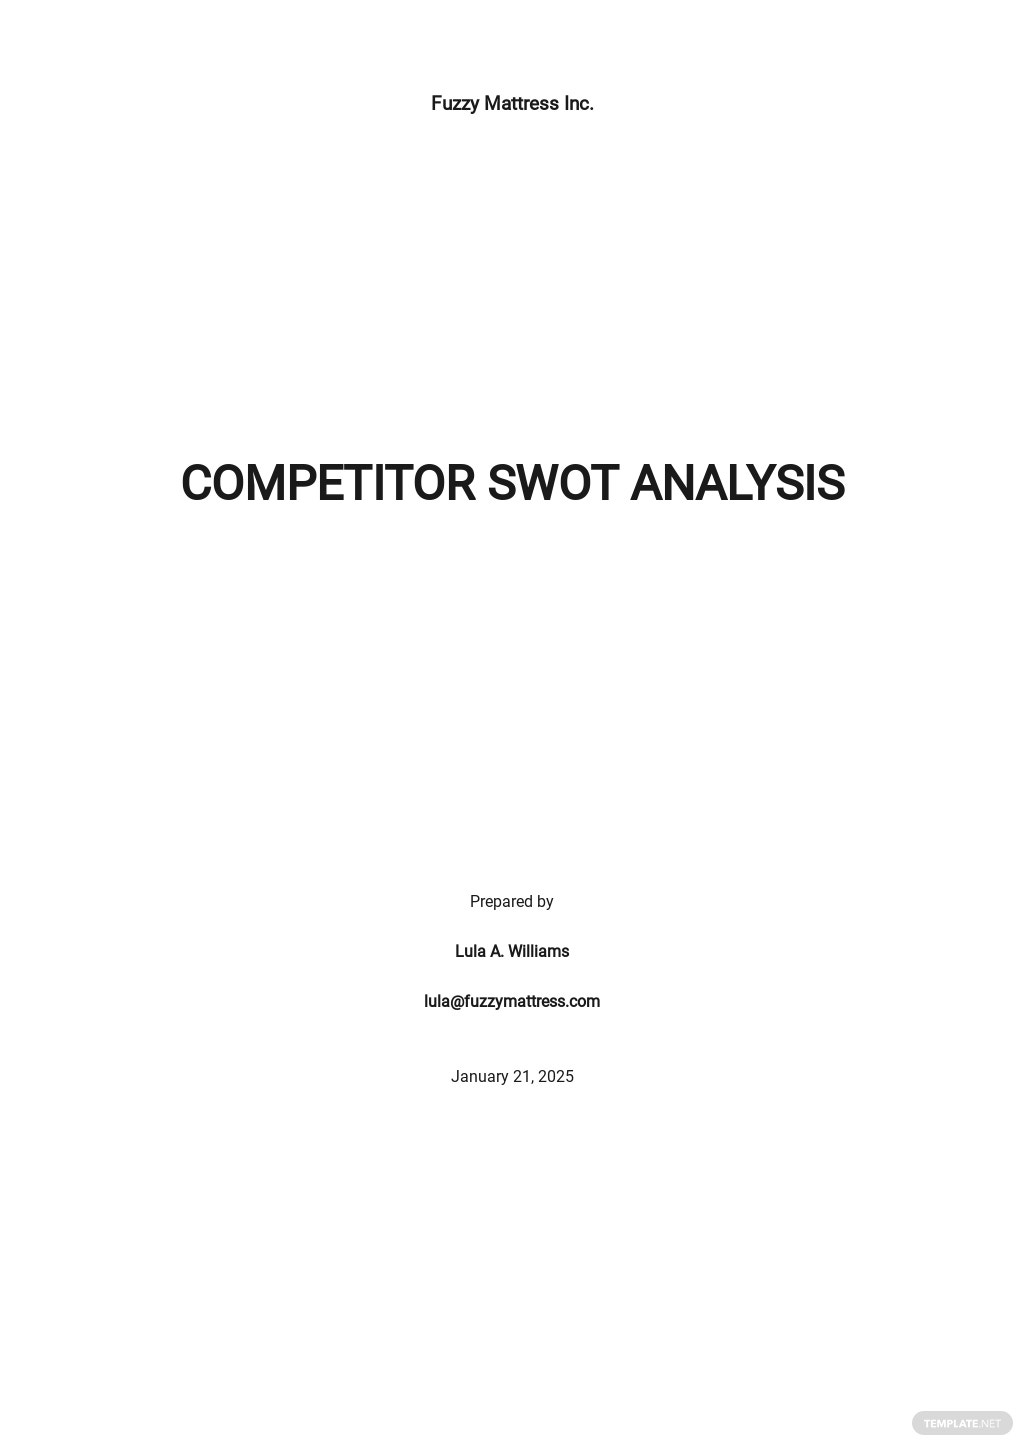 Competitor SWOT Analysis Template